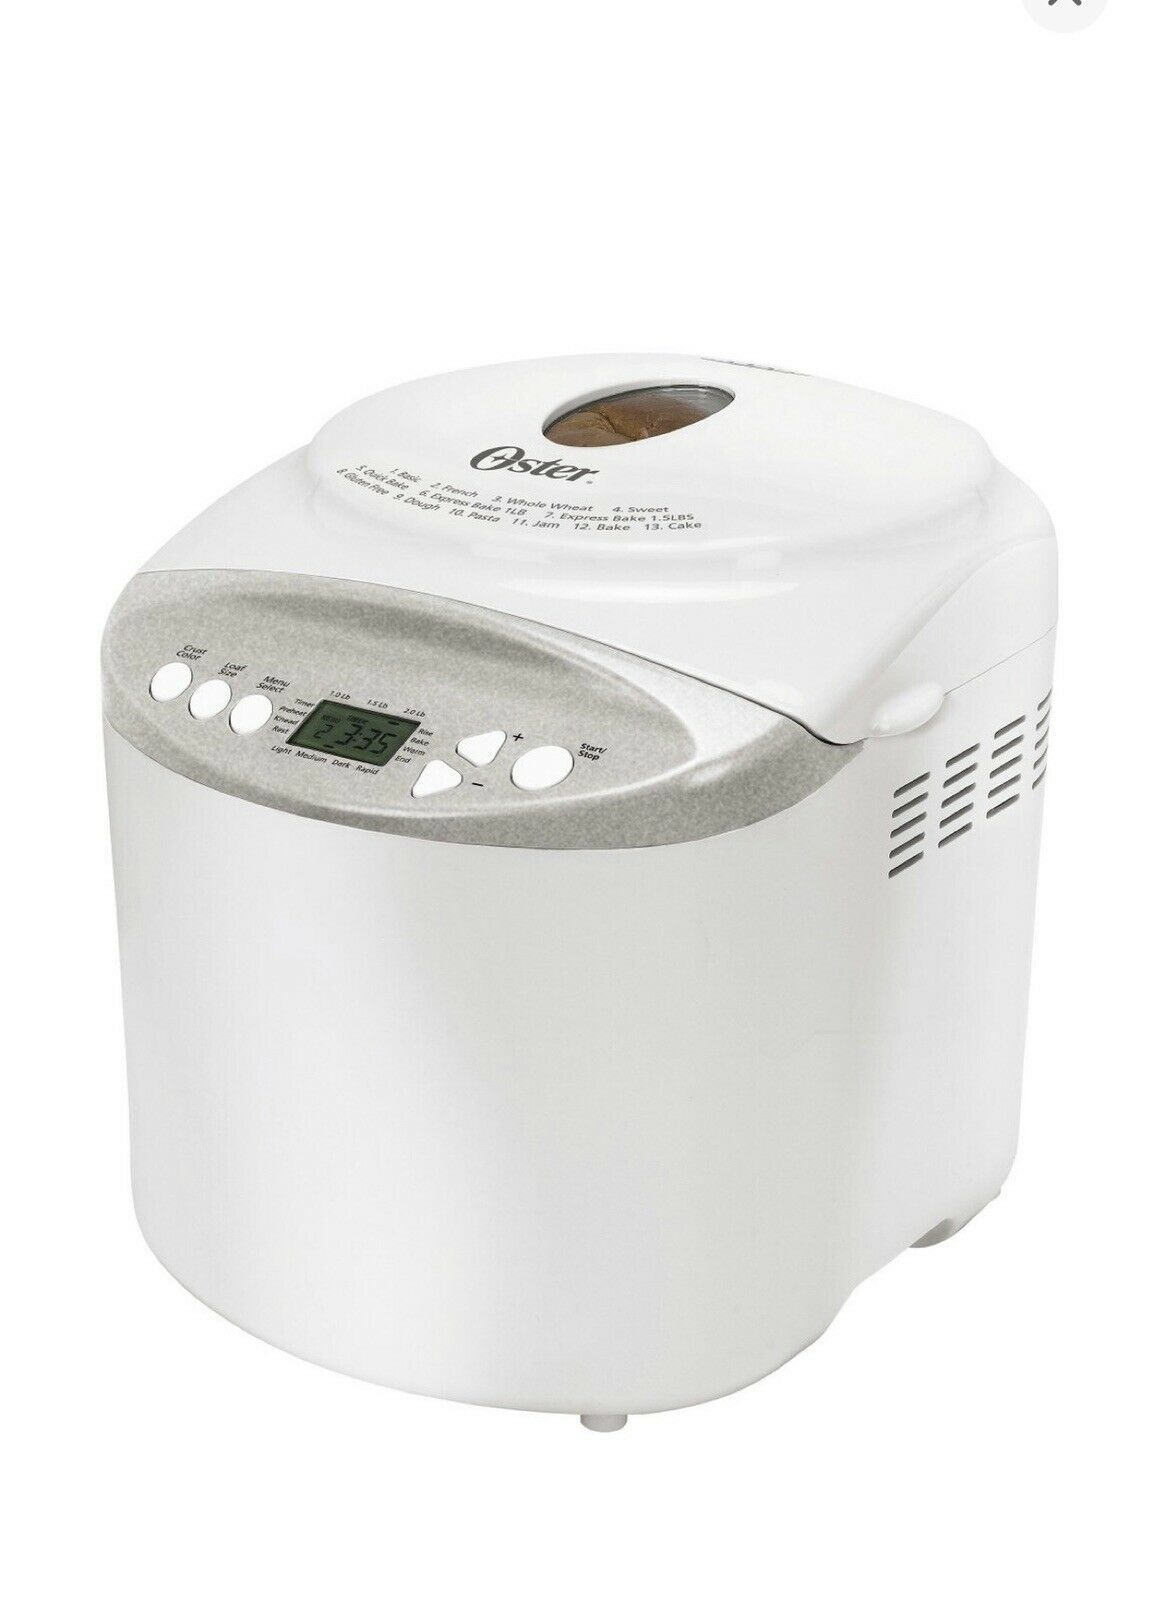 Oster Expressbake Bread Maker 2lb Loaf With Gluten Free Shipping Brand New Bread Machine Breadmachine In 2020 Bread Machine Bread Maker Machine